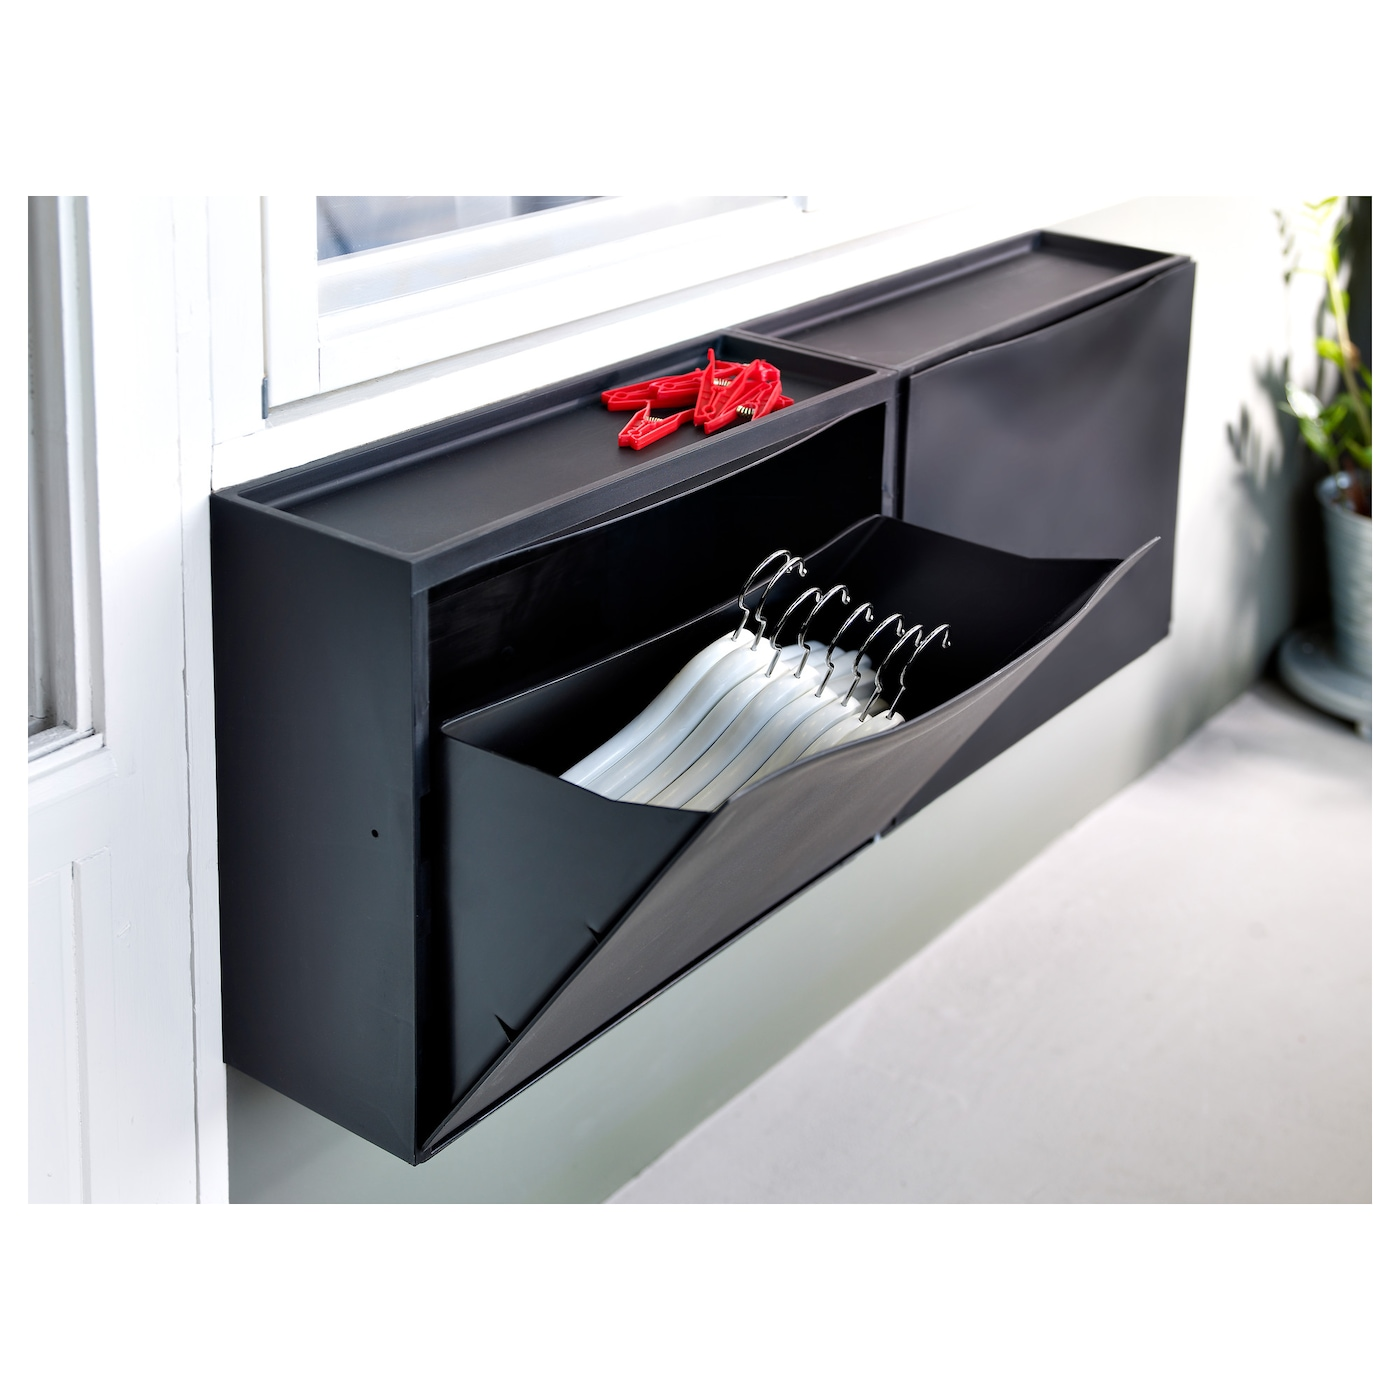 g sink compartments and ikea fall shoe stall decor door with cabinet